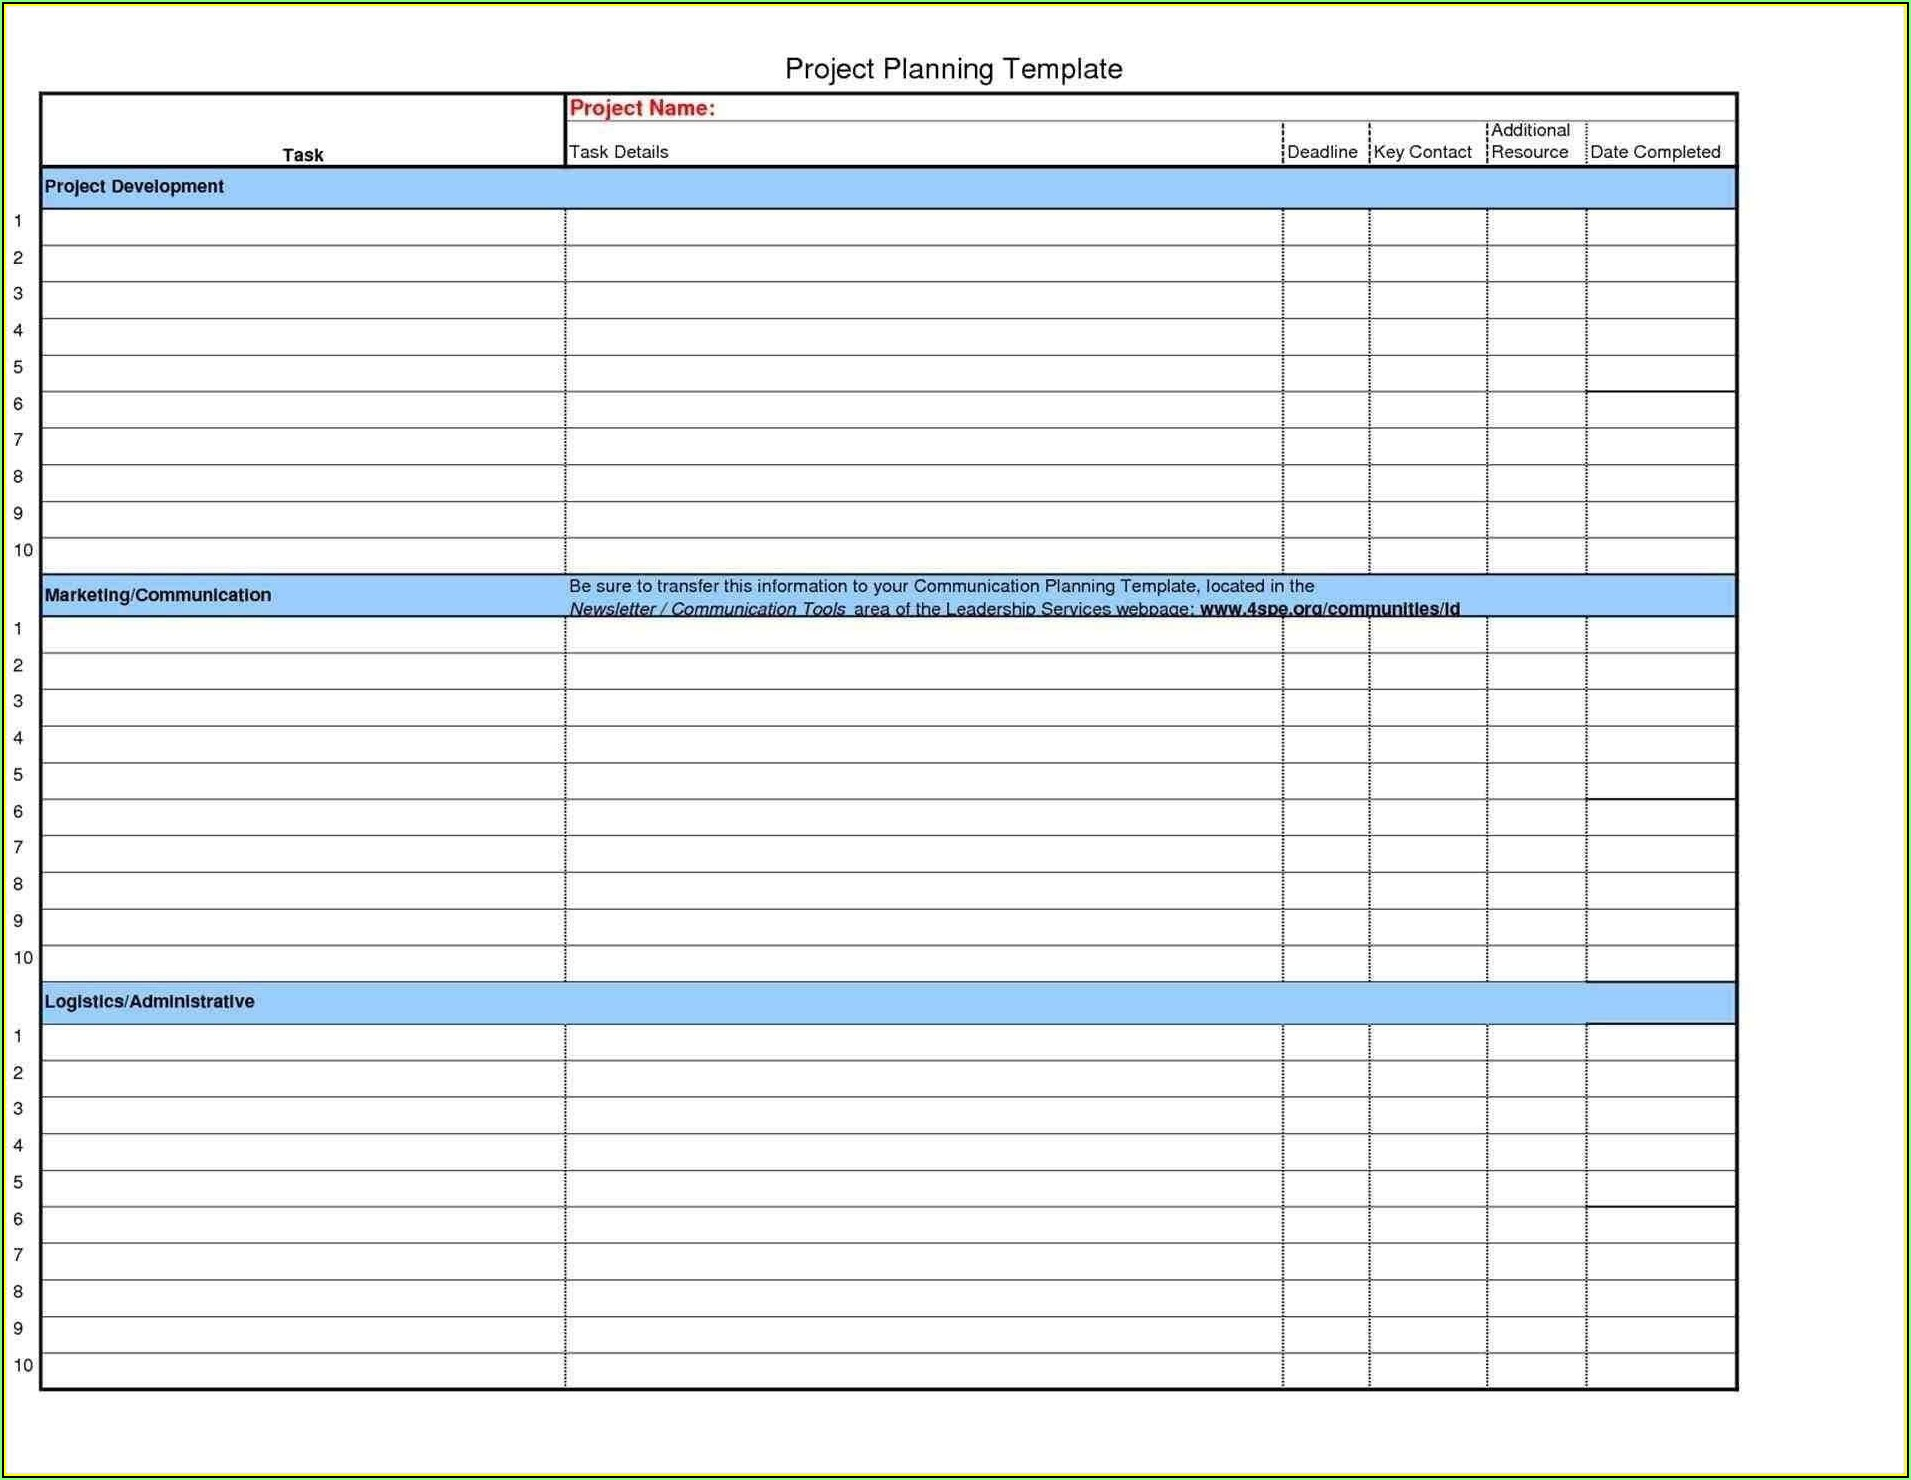 Project Planner Template Excel Free Download